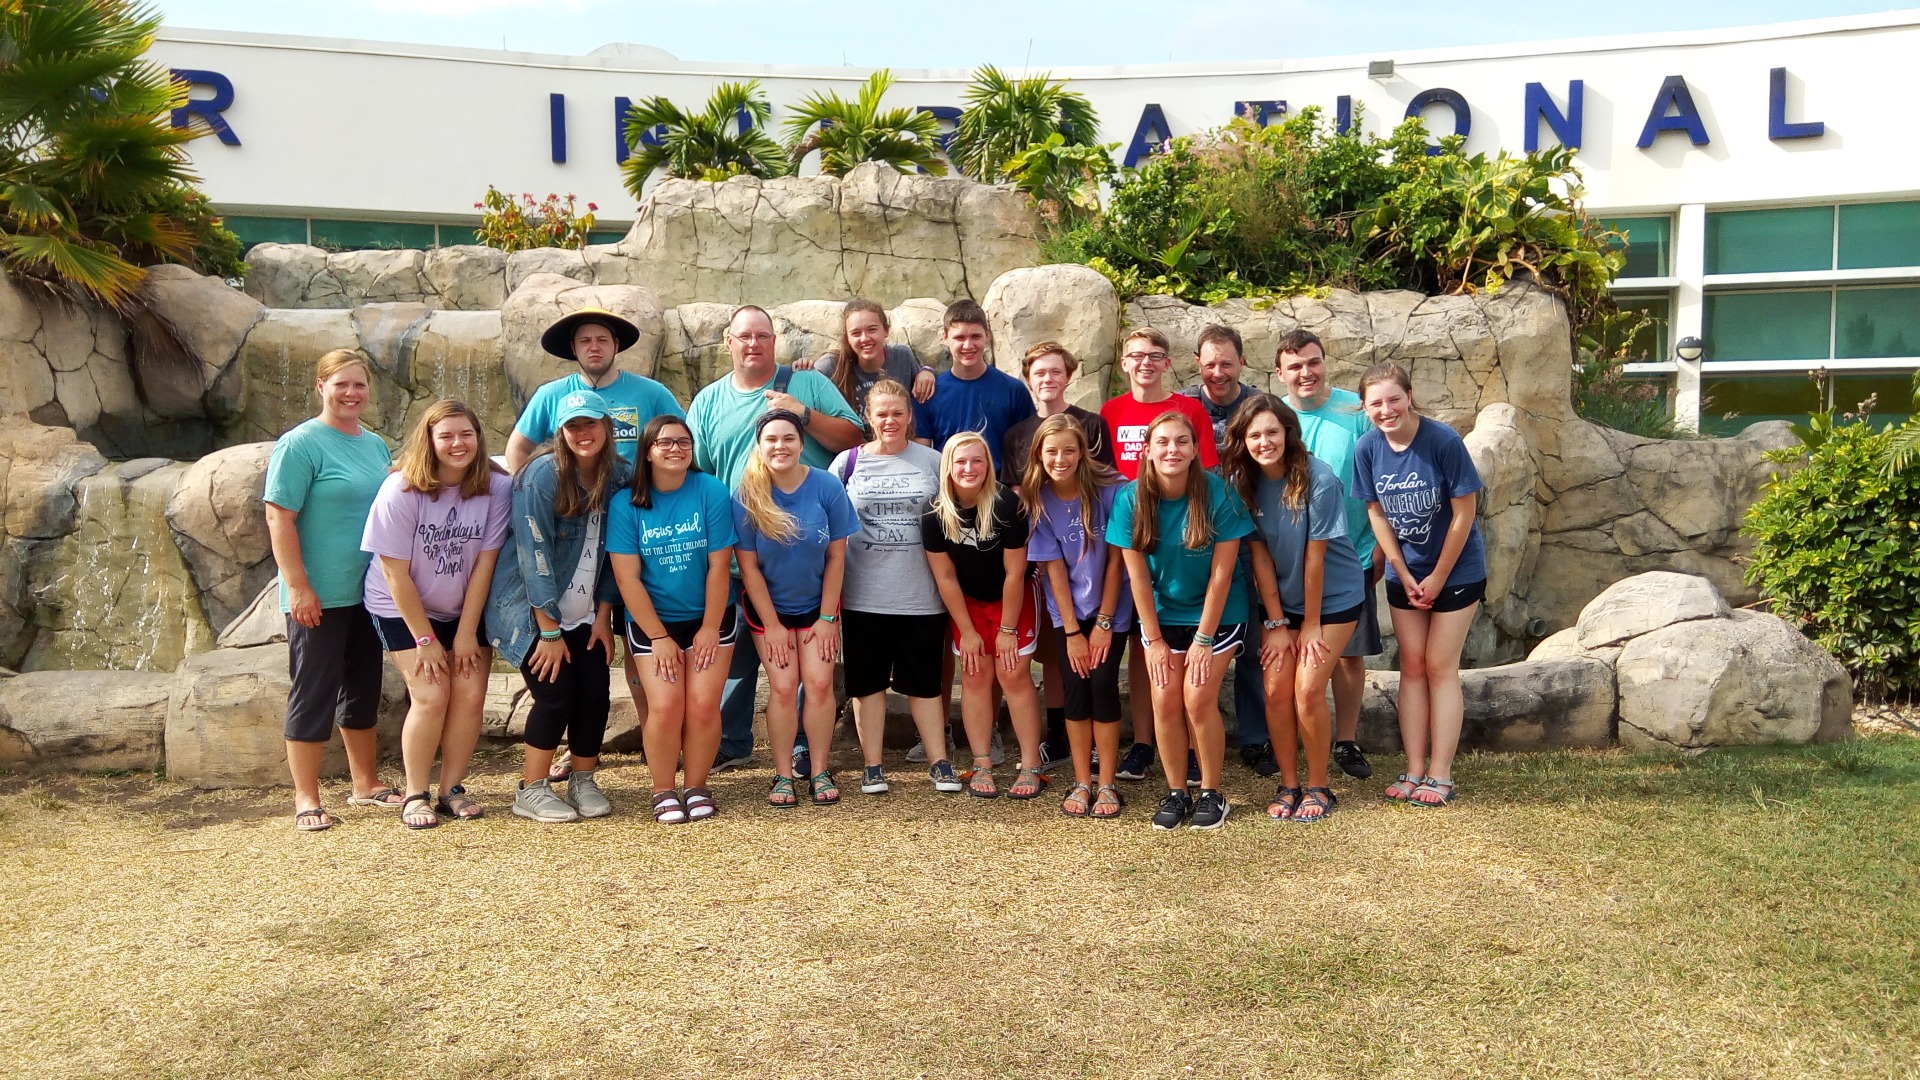 jamaica mission trip journals praying pelican missions